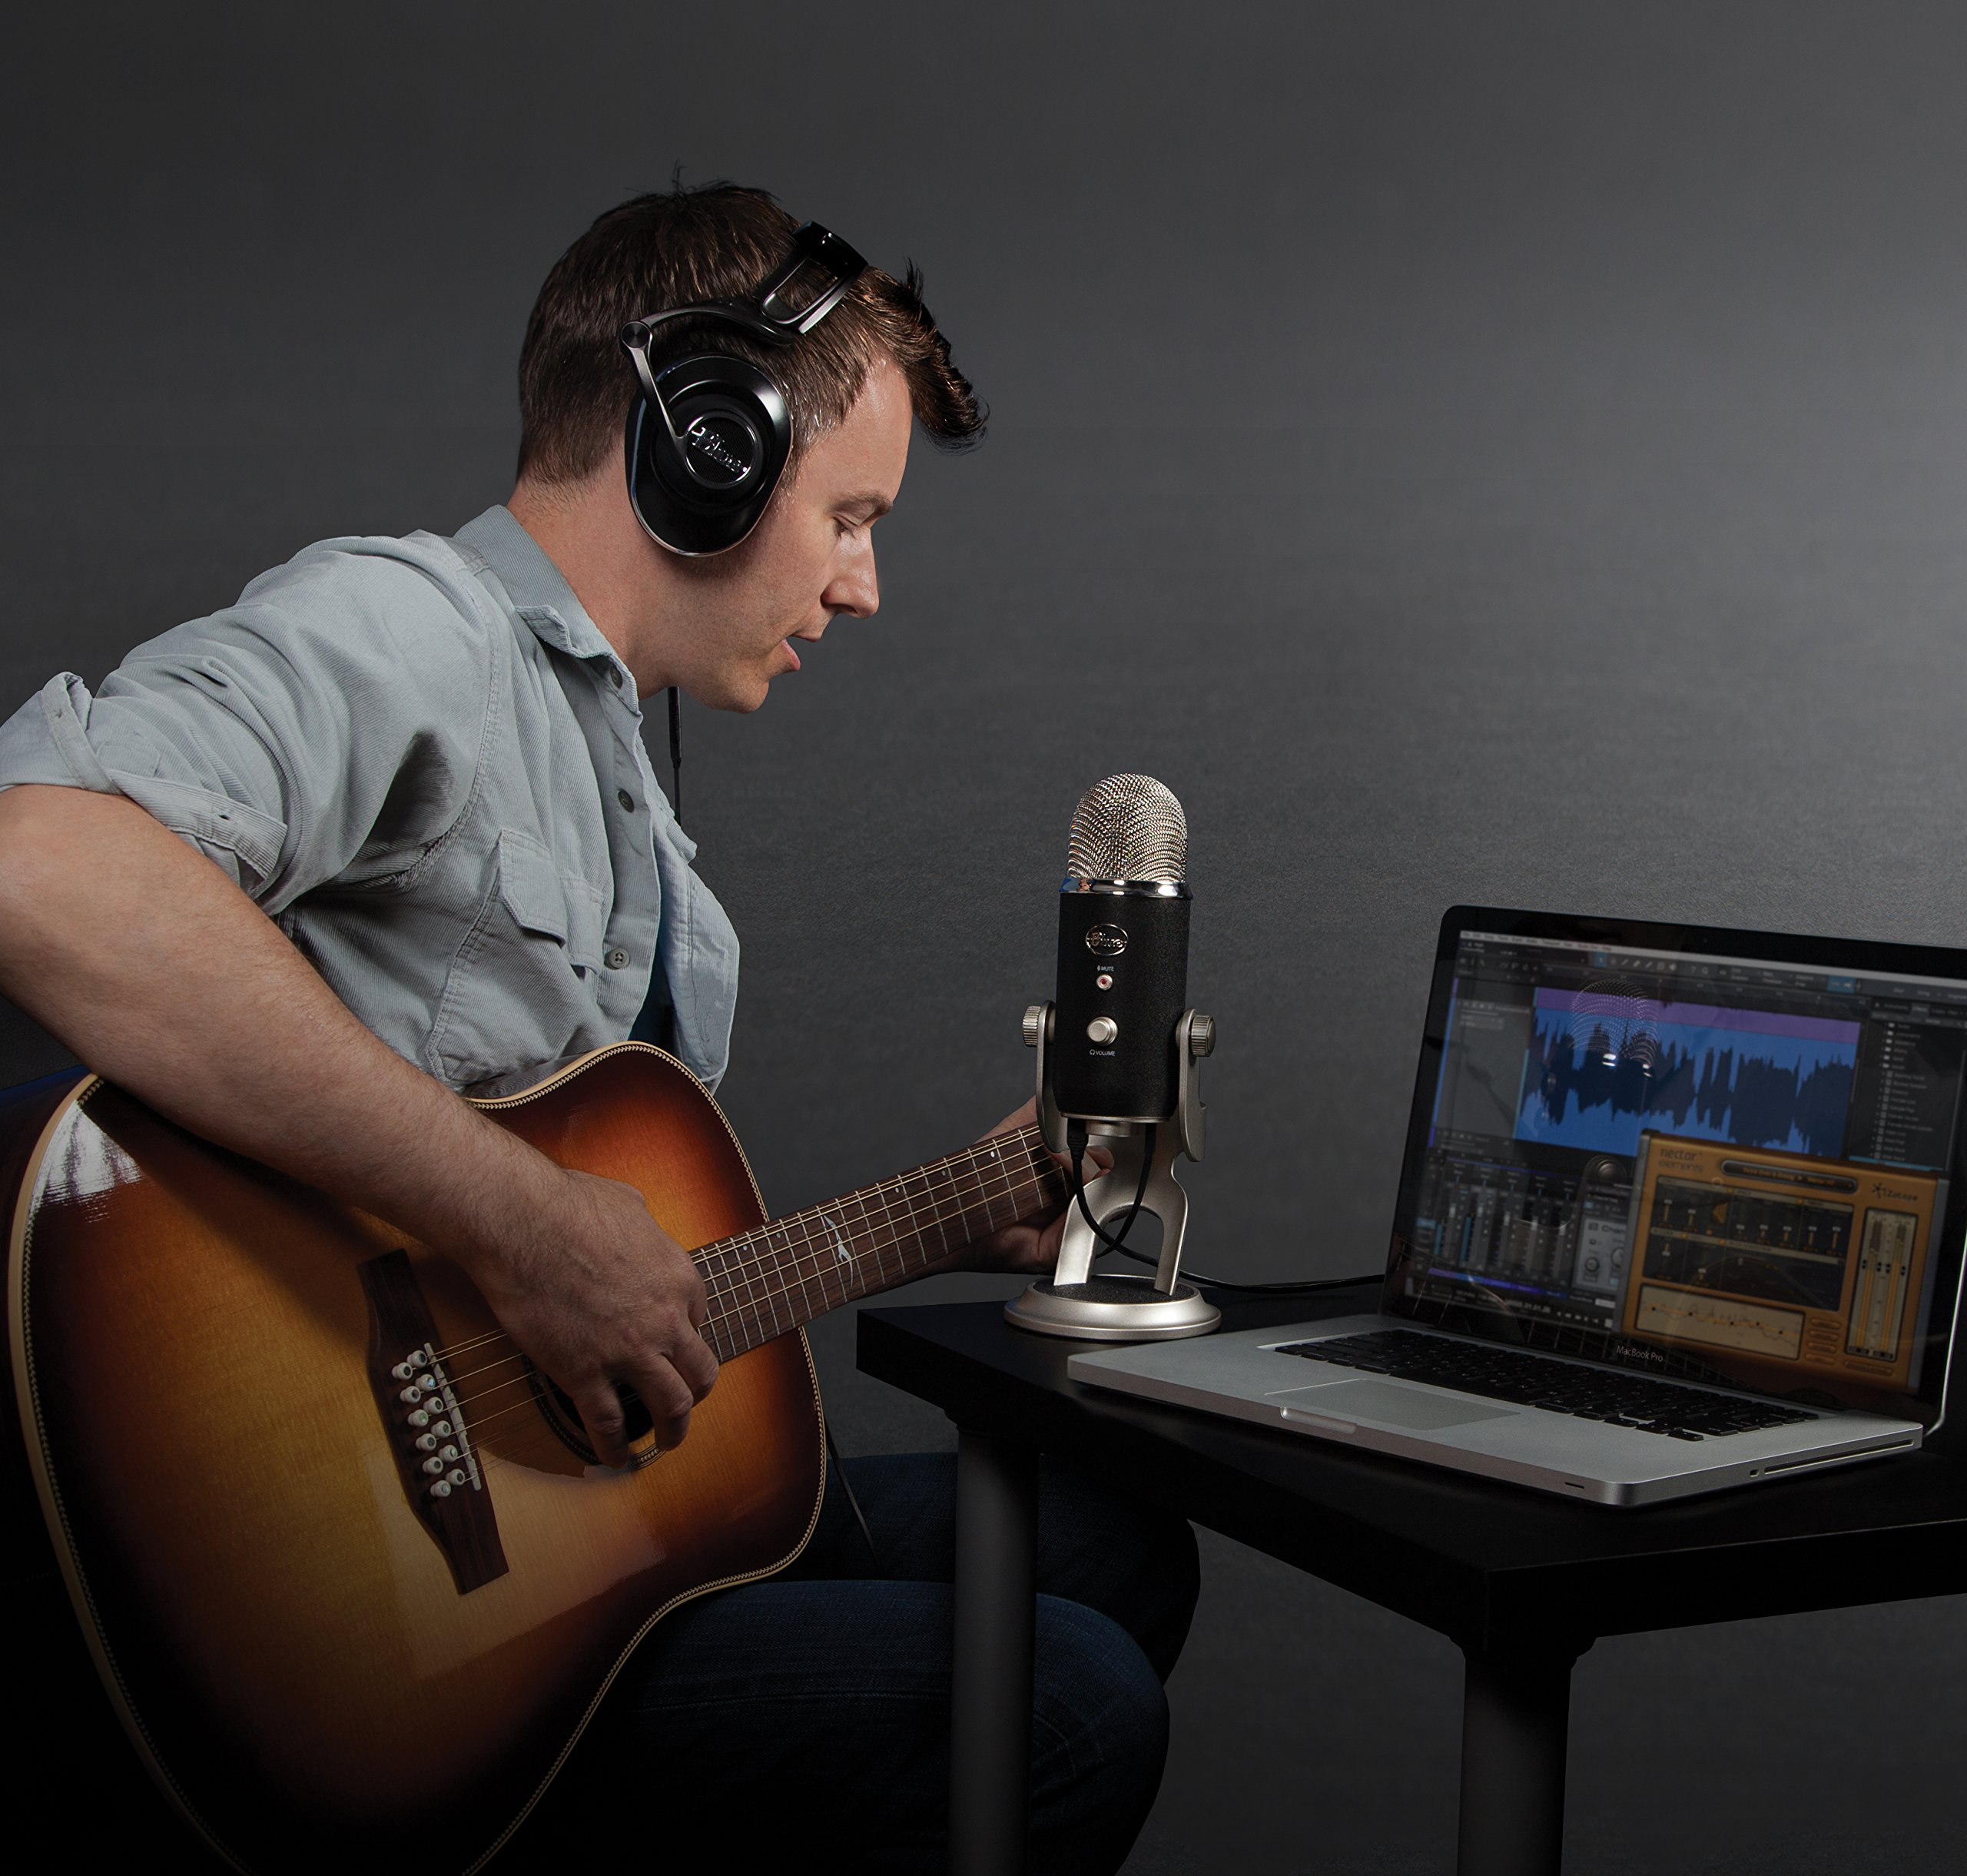 Blue Yeti Pro Studio All-In-One Pro Studio Vocal System with Recording Software by Blue (Image #3)